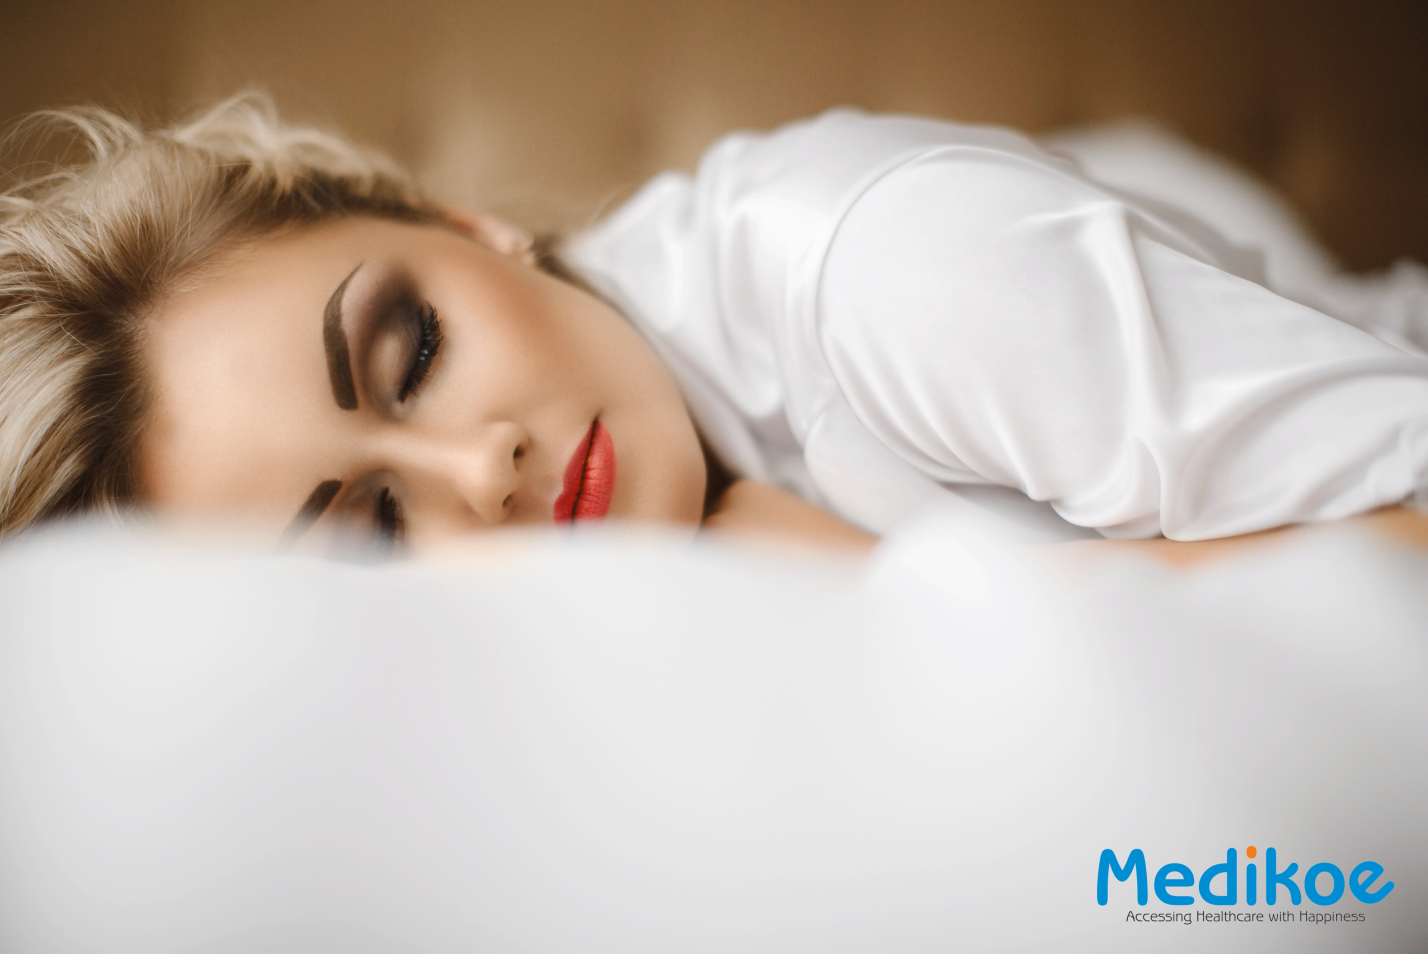 What Happens If You Sleep With Your Makeup On? - Medikoe